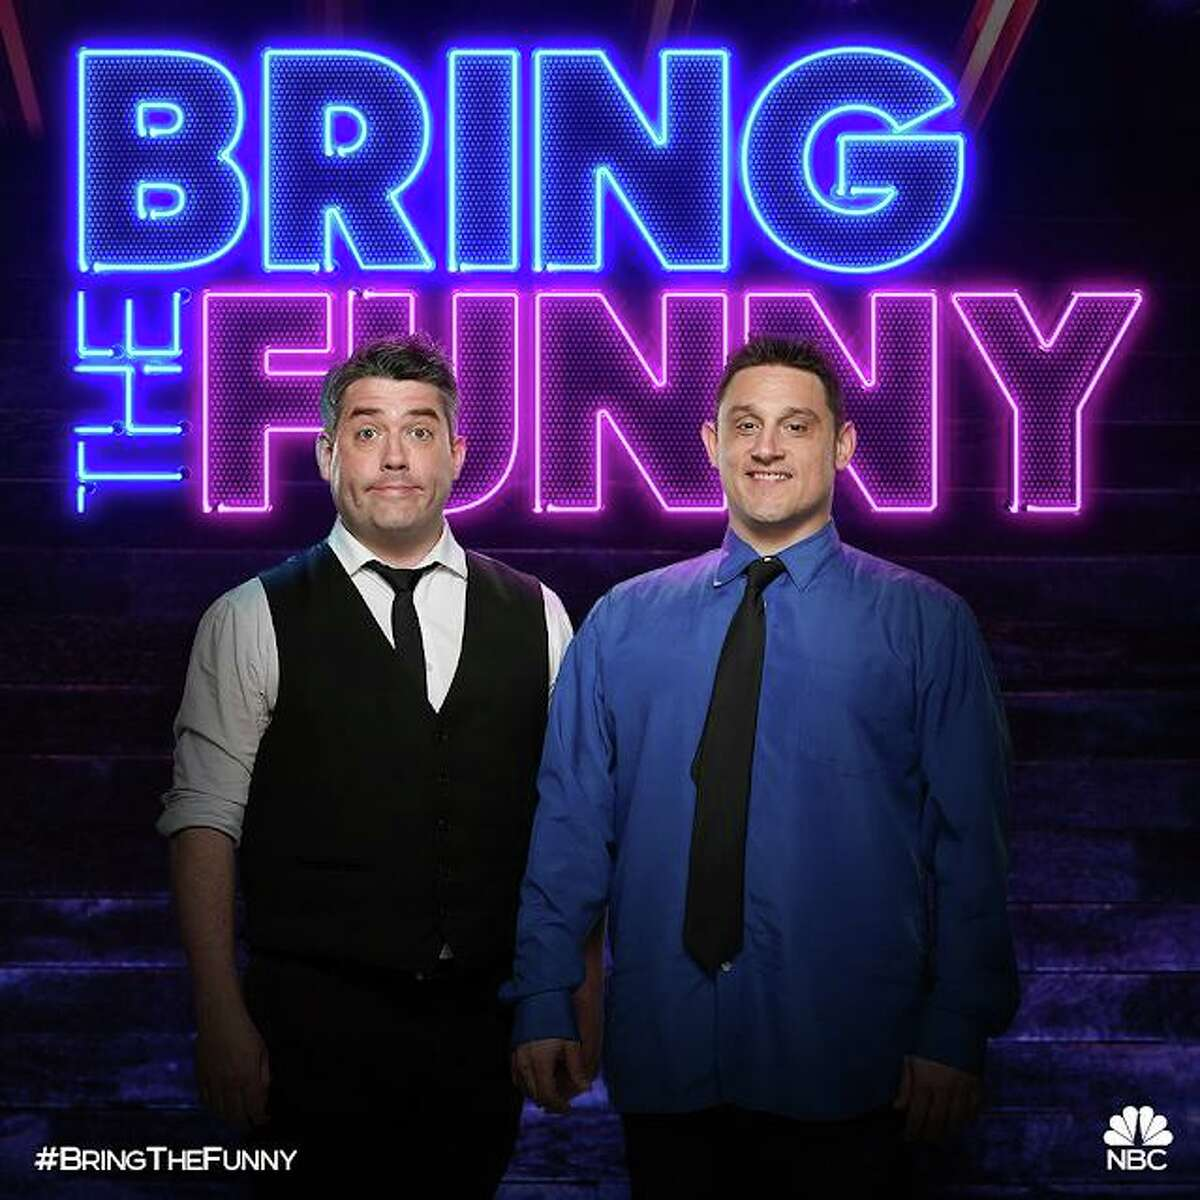 The Stamford comedy duo known as